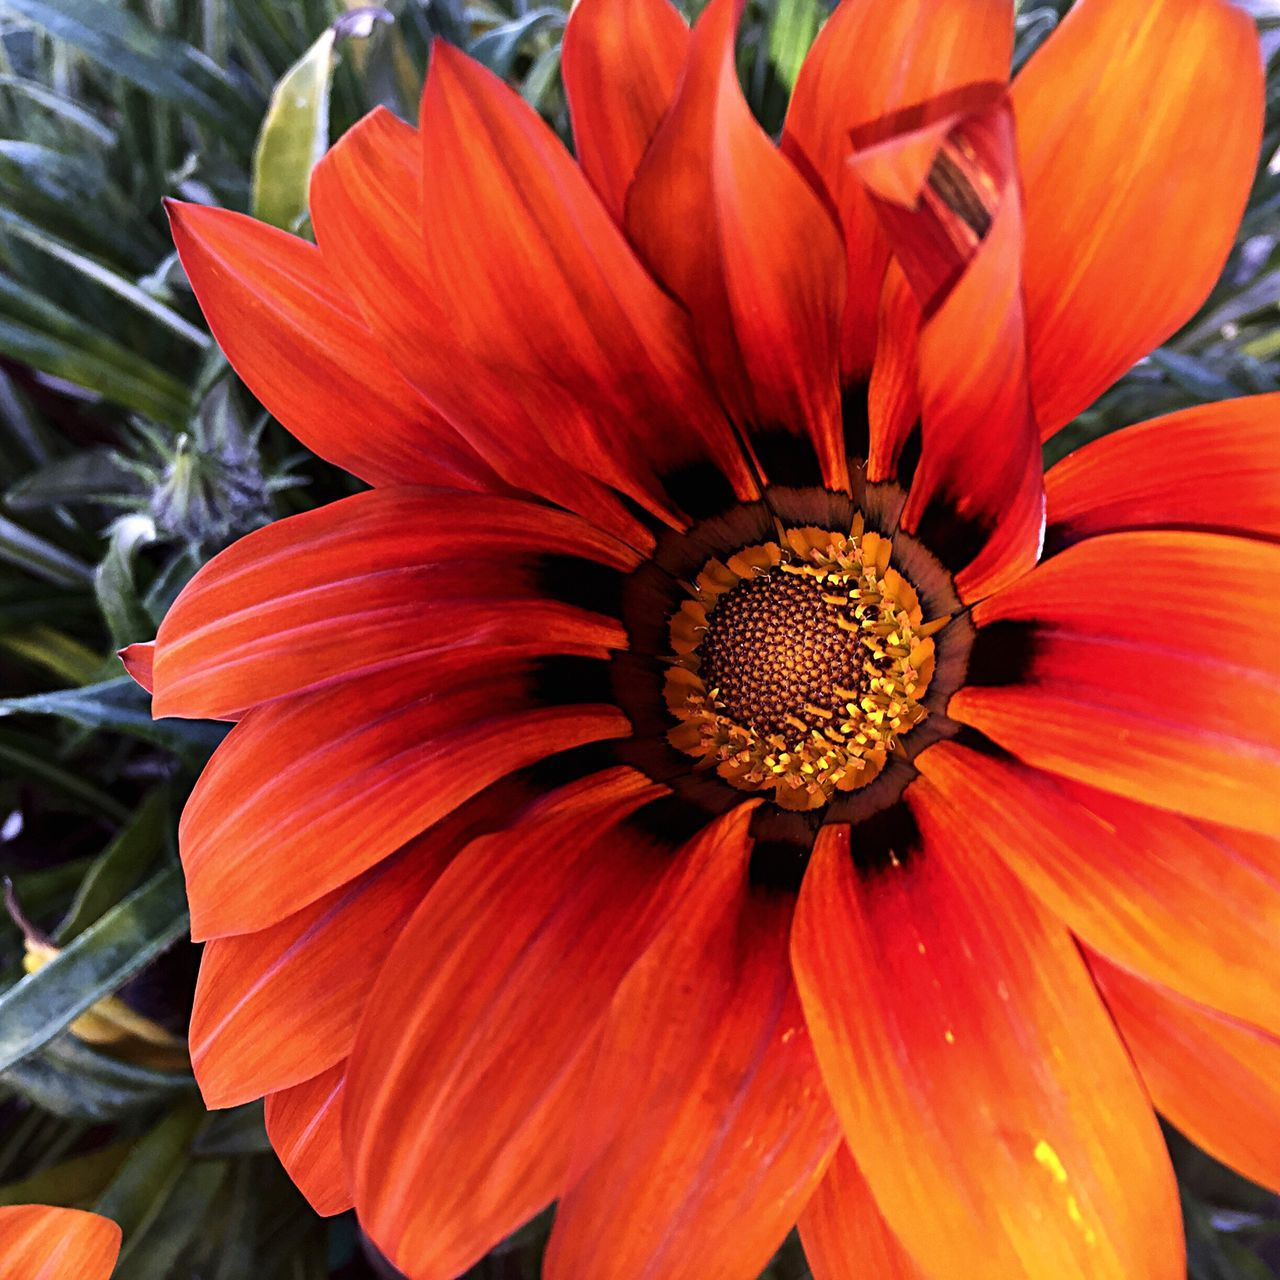 Flower Fragility Petal Beauty In Nature Flower Head Nature Freshness Blooming Growth Orange Color Close-up Pollen Plant Day Outdoors No People Plant